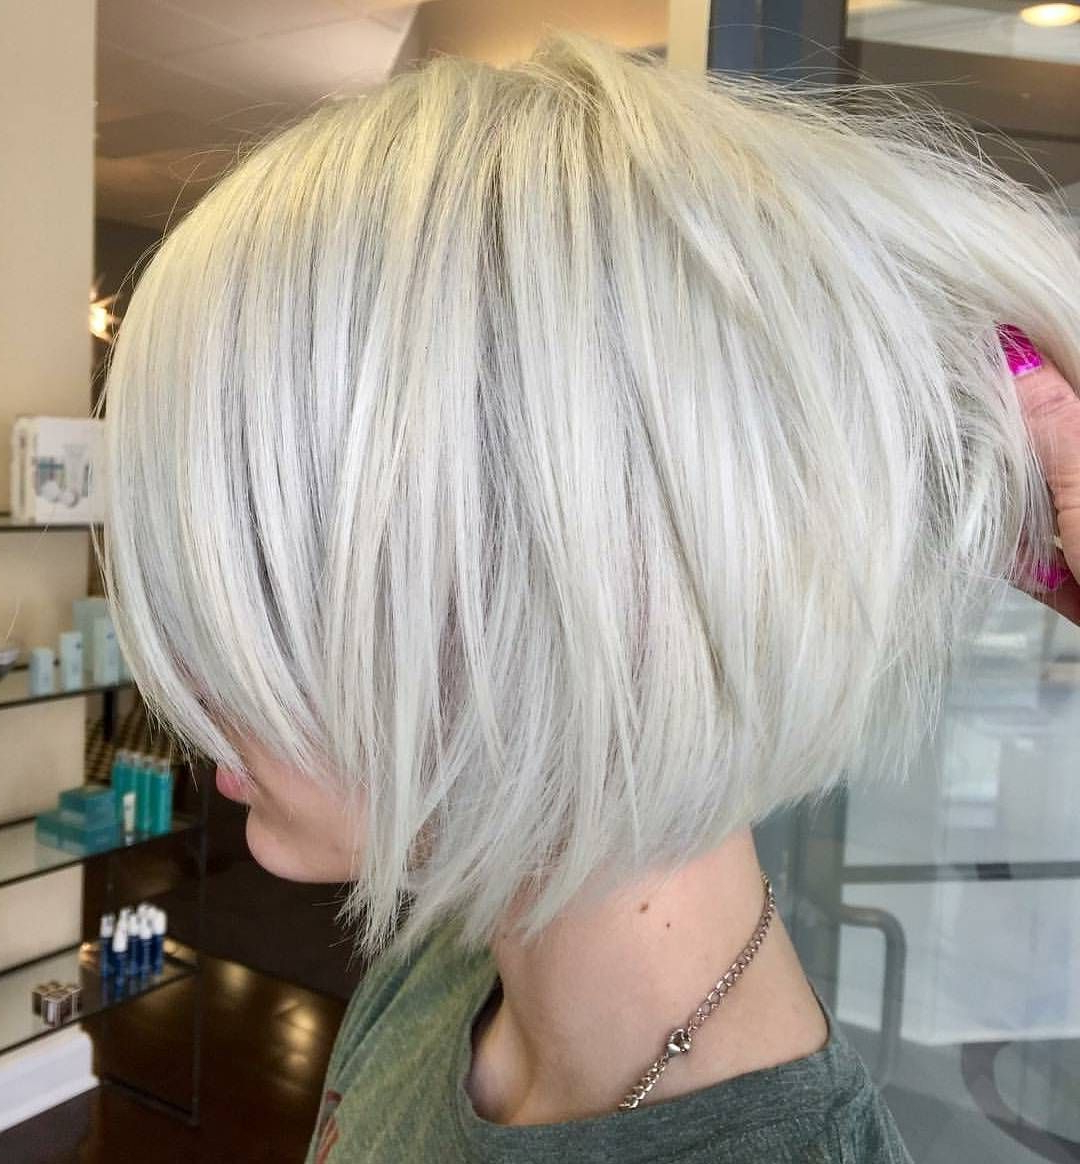 10 Layered Bob Hairstyles – Look Fab In New Blonde Shades | Hair With White Blonde Curly Layered Bob Hairstyles (View 2 of 20)